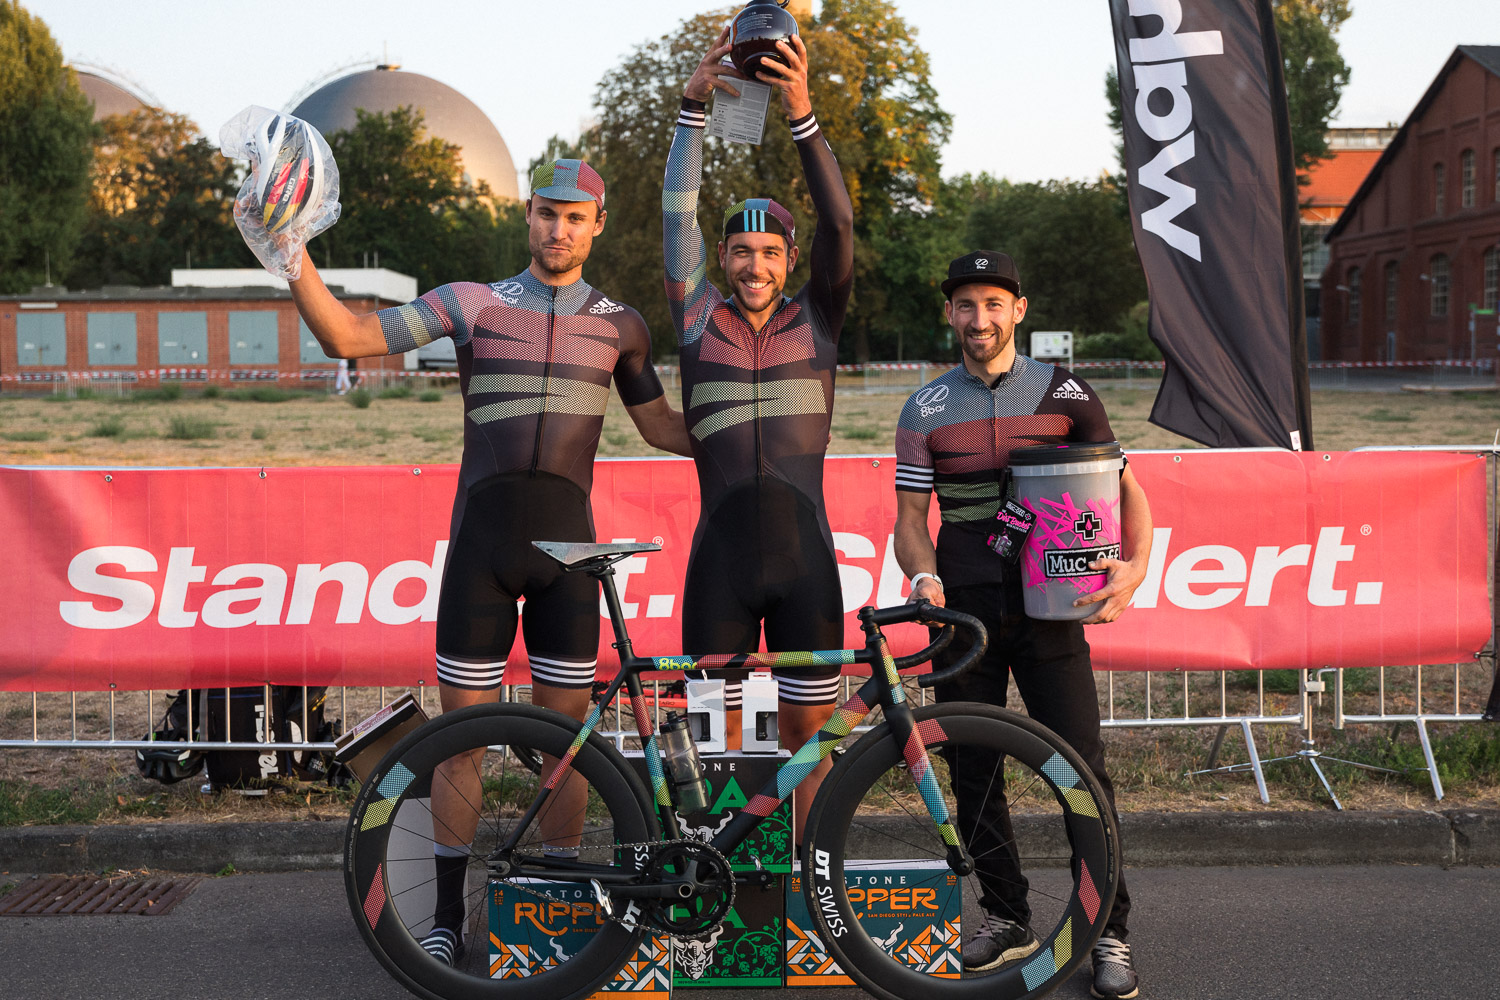 8bar bikes sbsb crit race fixed gear lr 49 - 8bar Team dominiert das Podium beim SBSB Crit Berlin